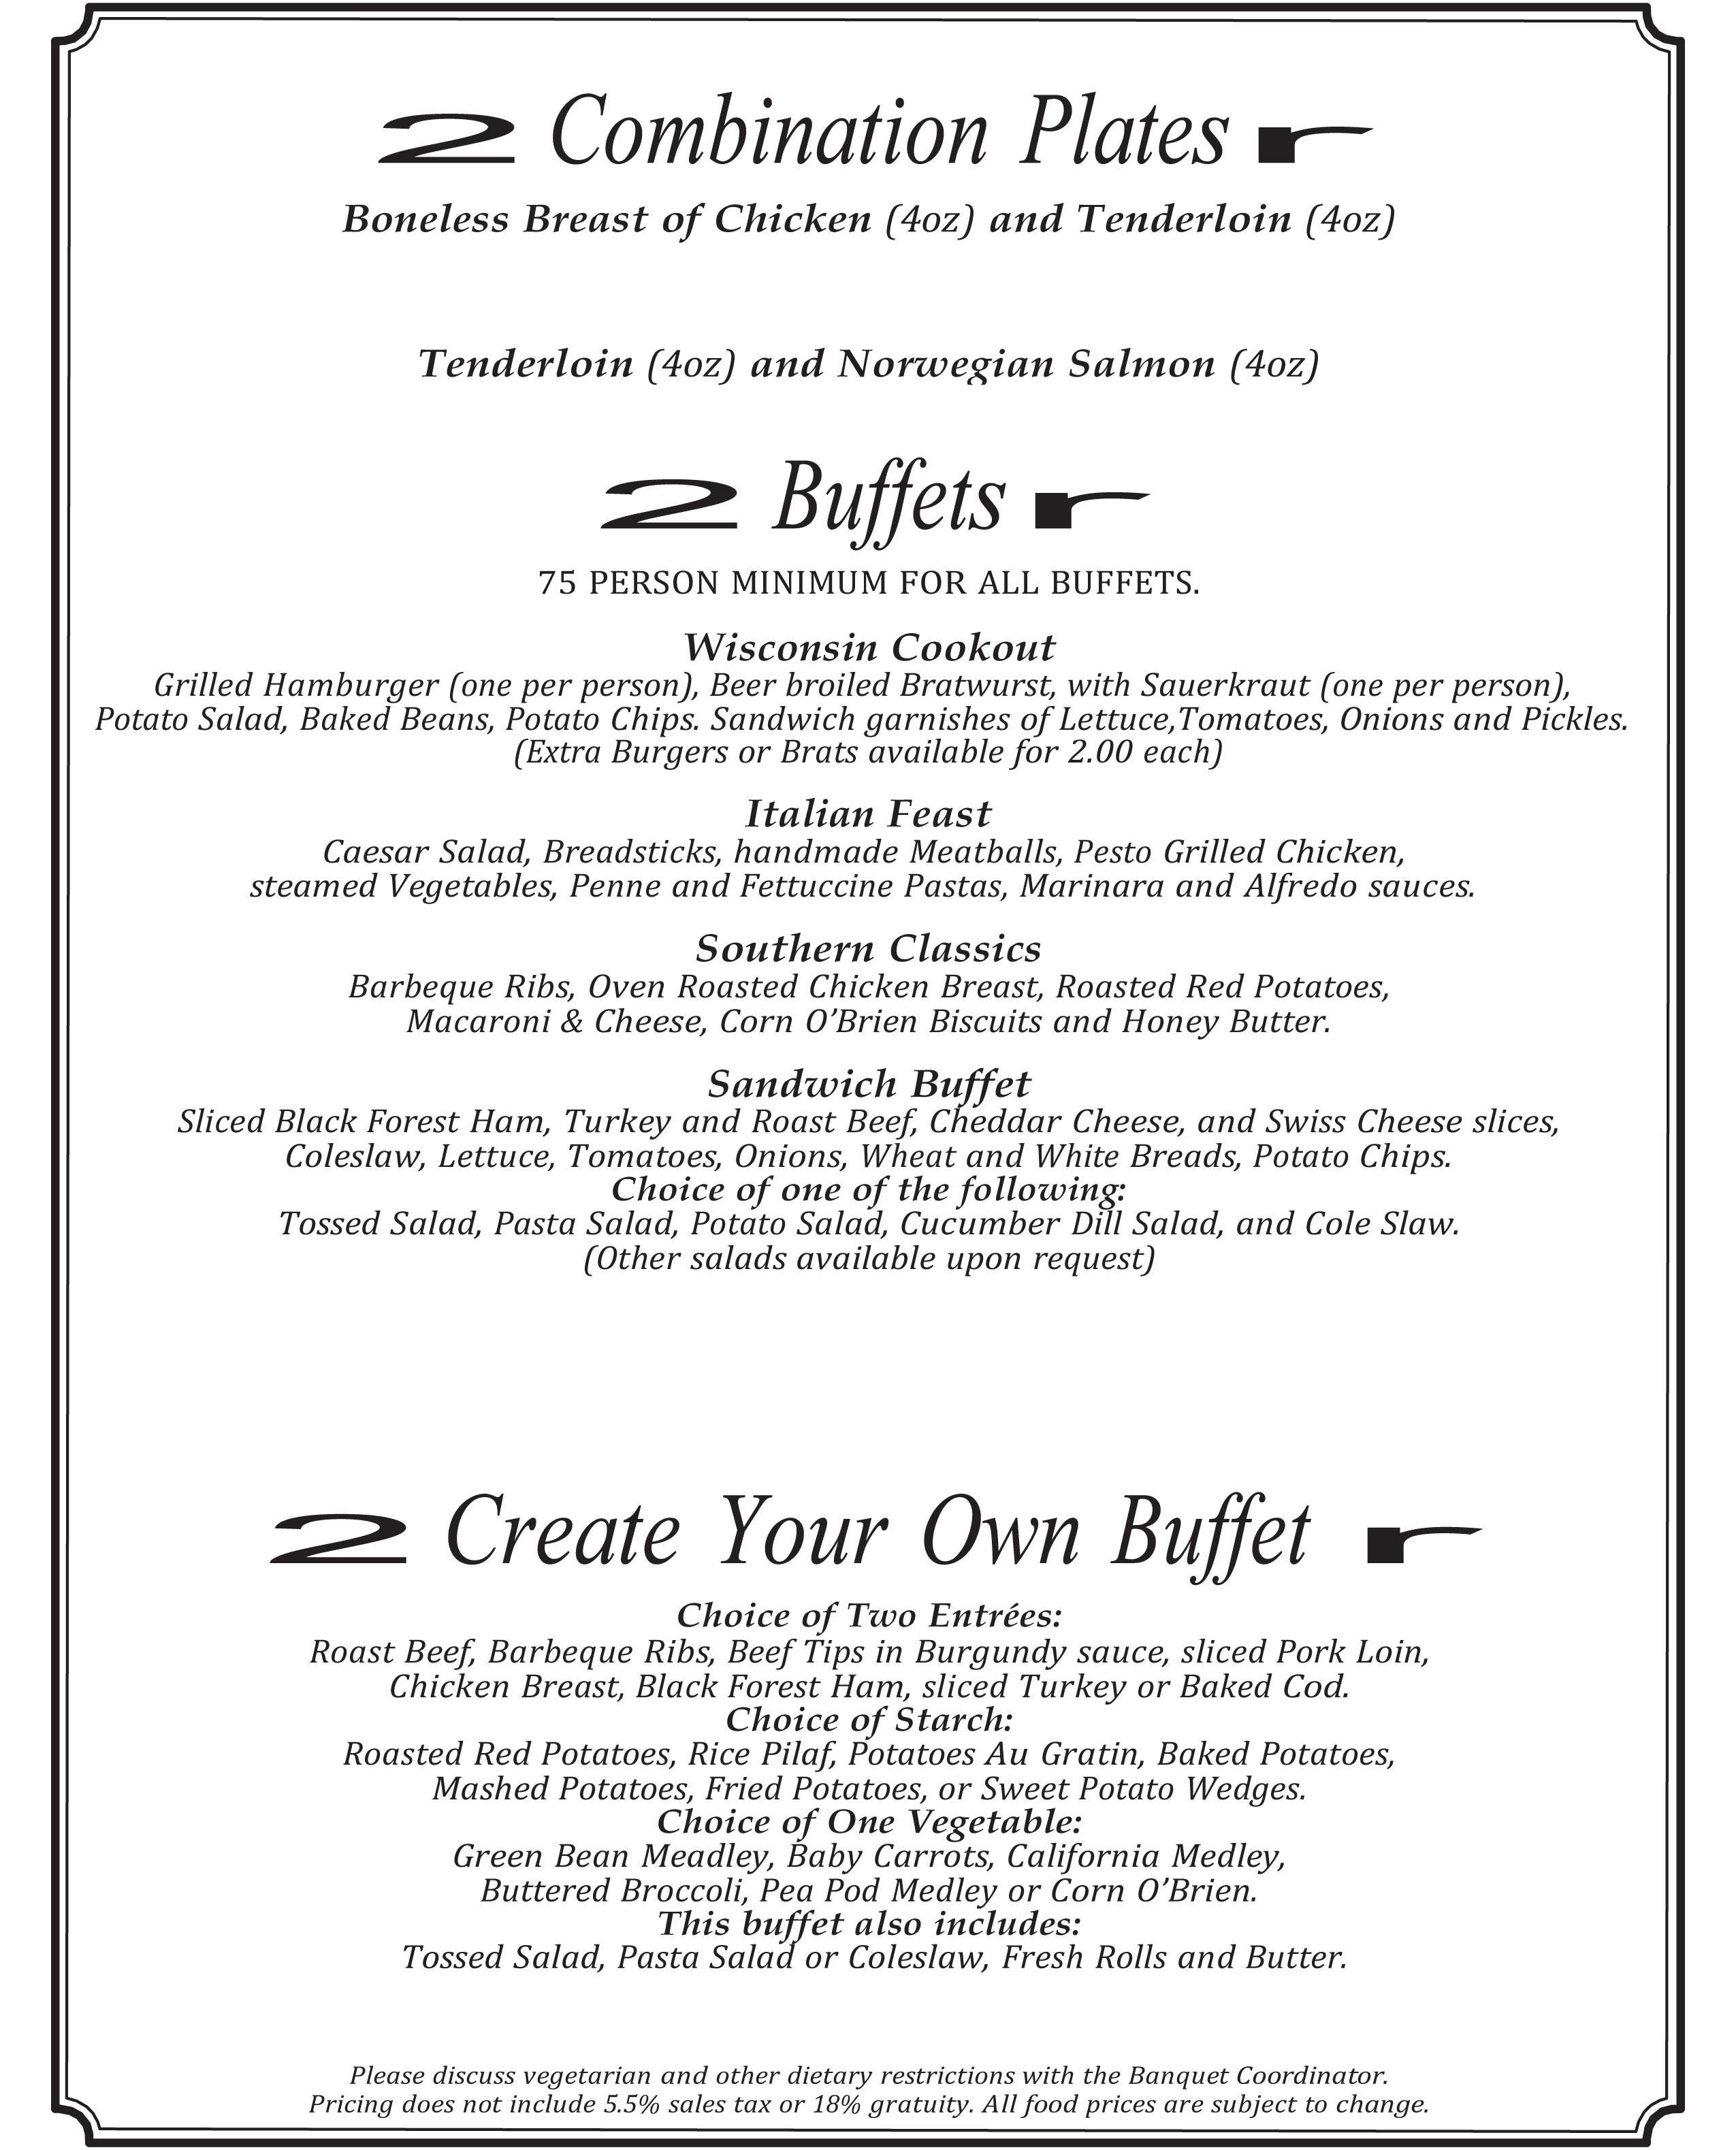 Elks_Banquet_Menu_Oct_15-4